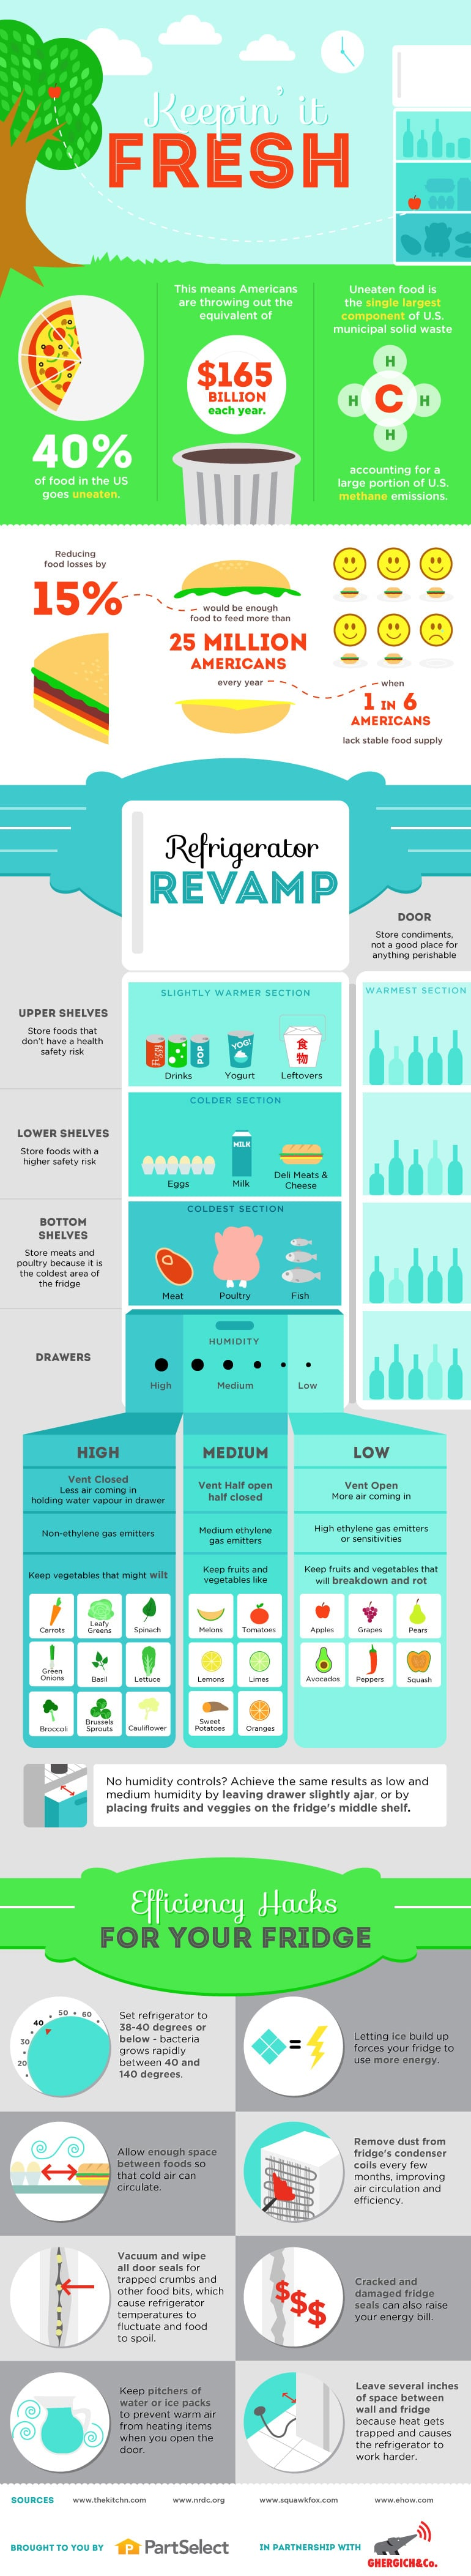 Fridge Storage and Efficiency Hacks! Learn How to Organize Food for Maximum Freshness